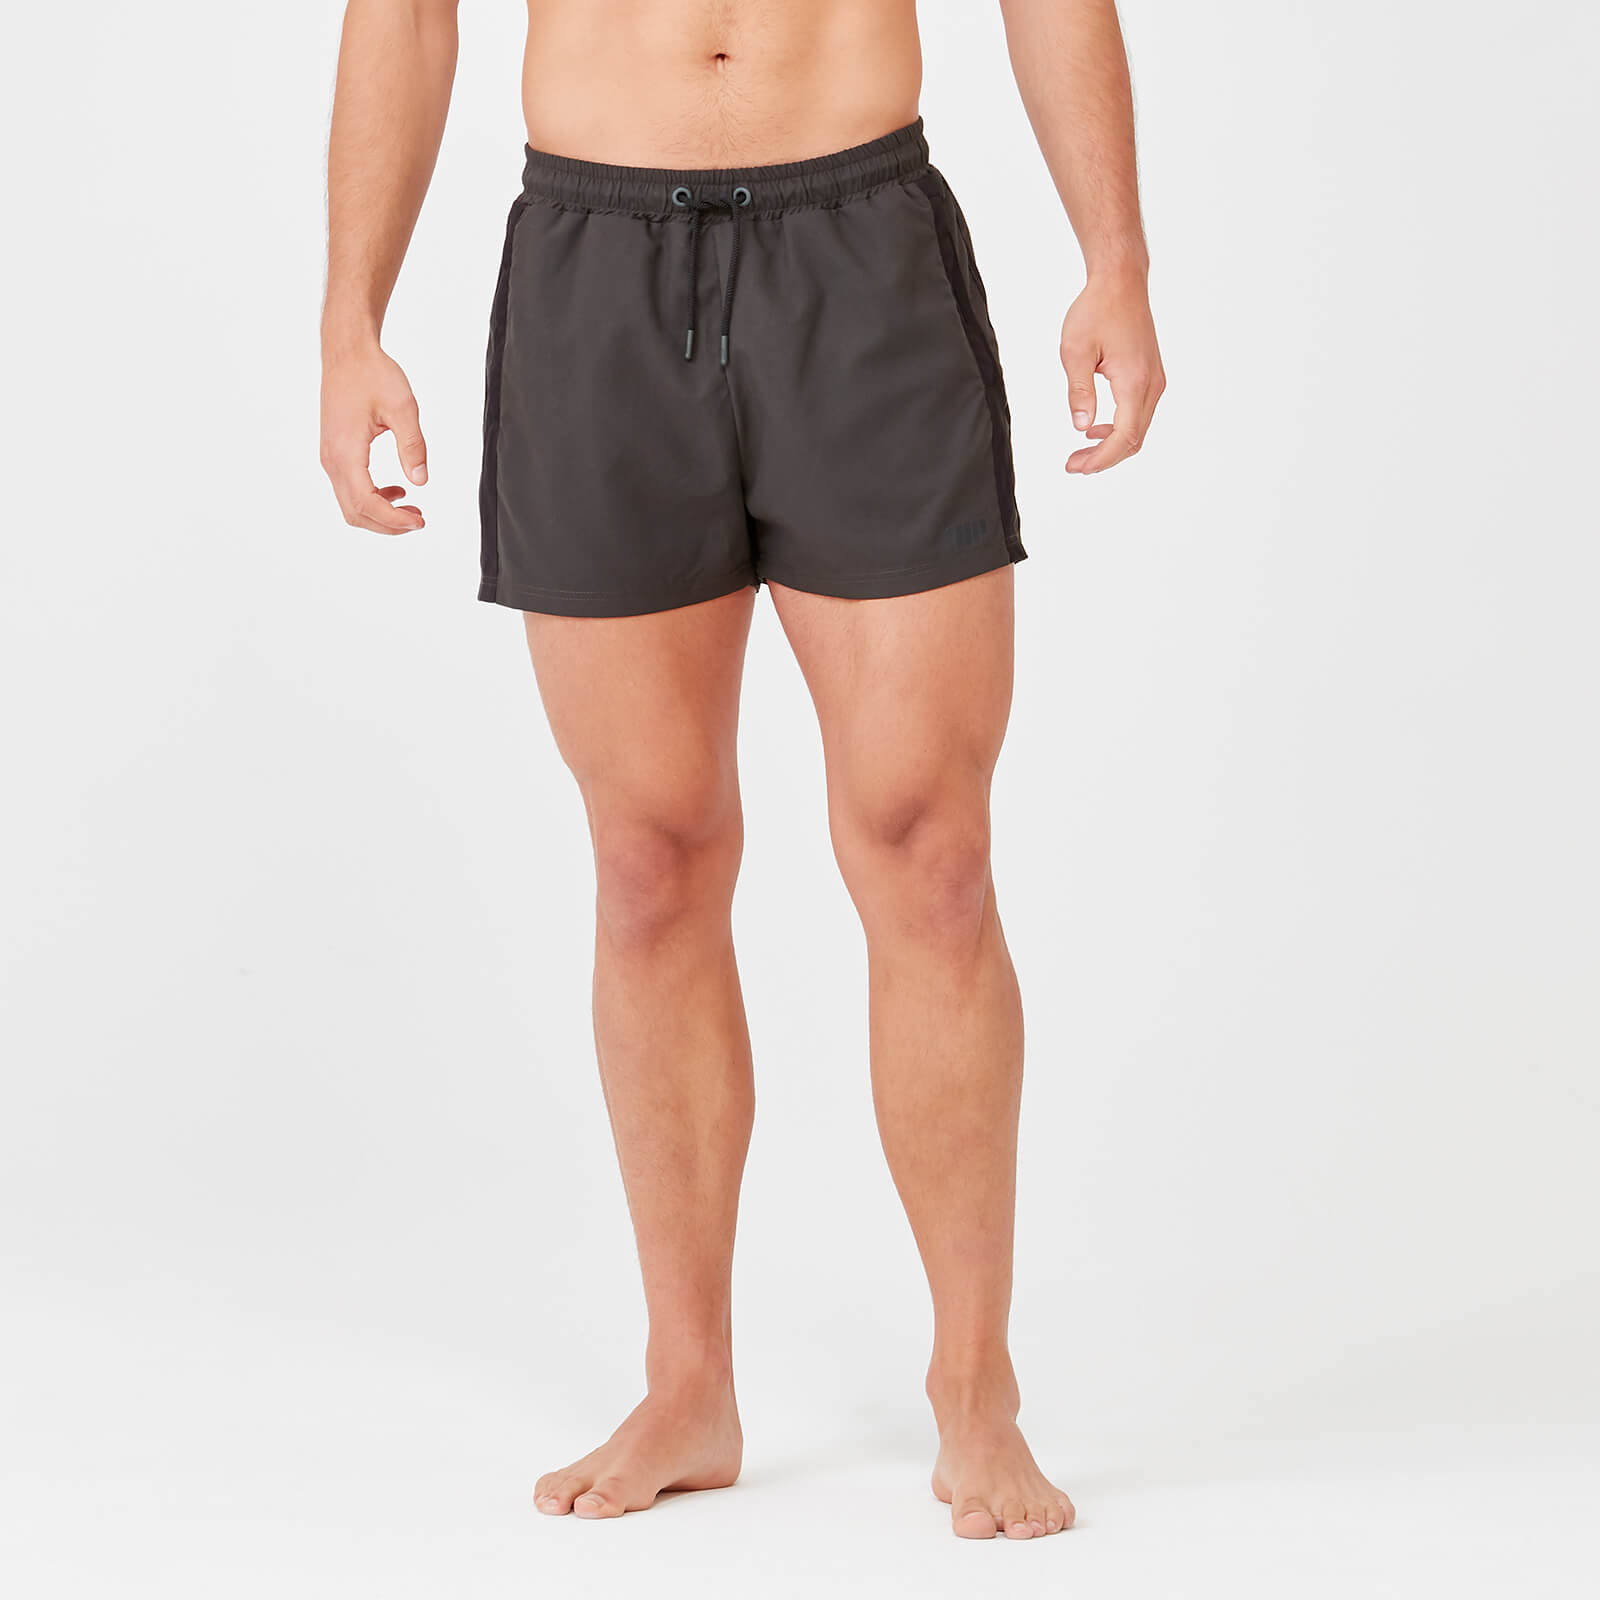 Short Length Stripe Swim Shorts - Dark Khaki/Black - XS